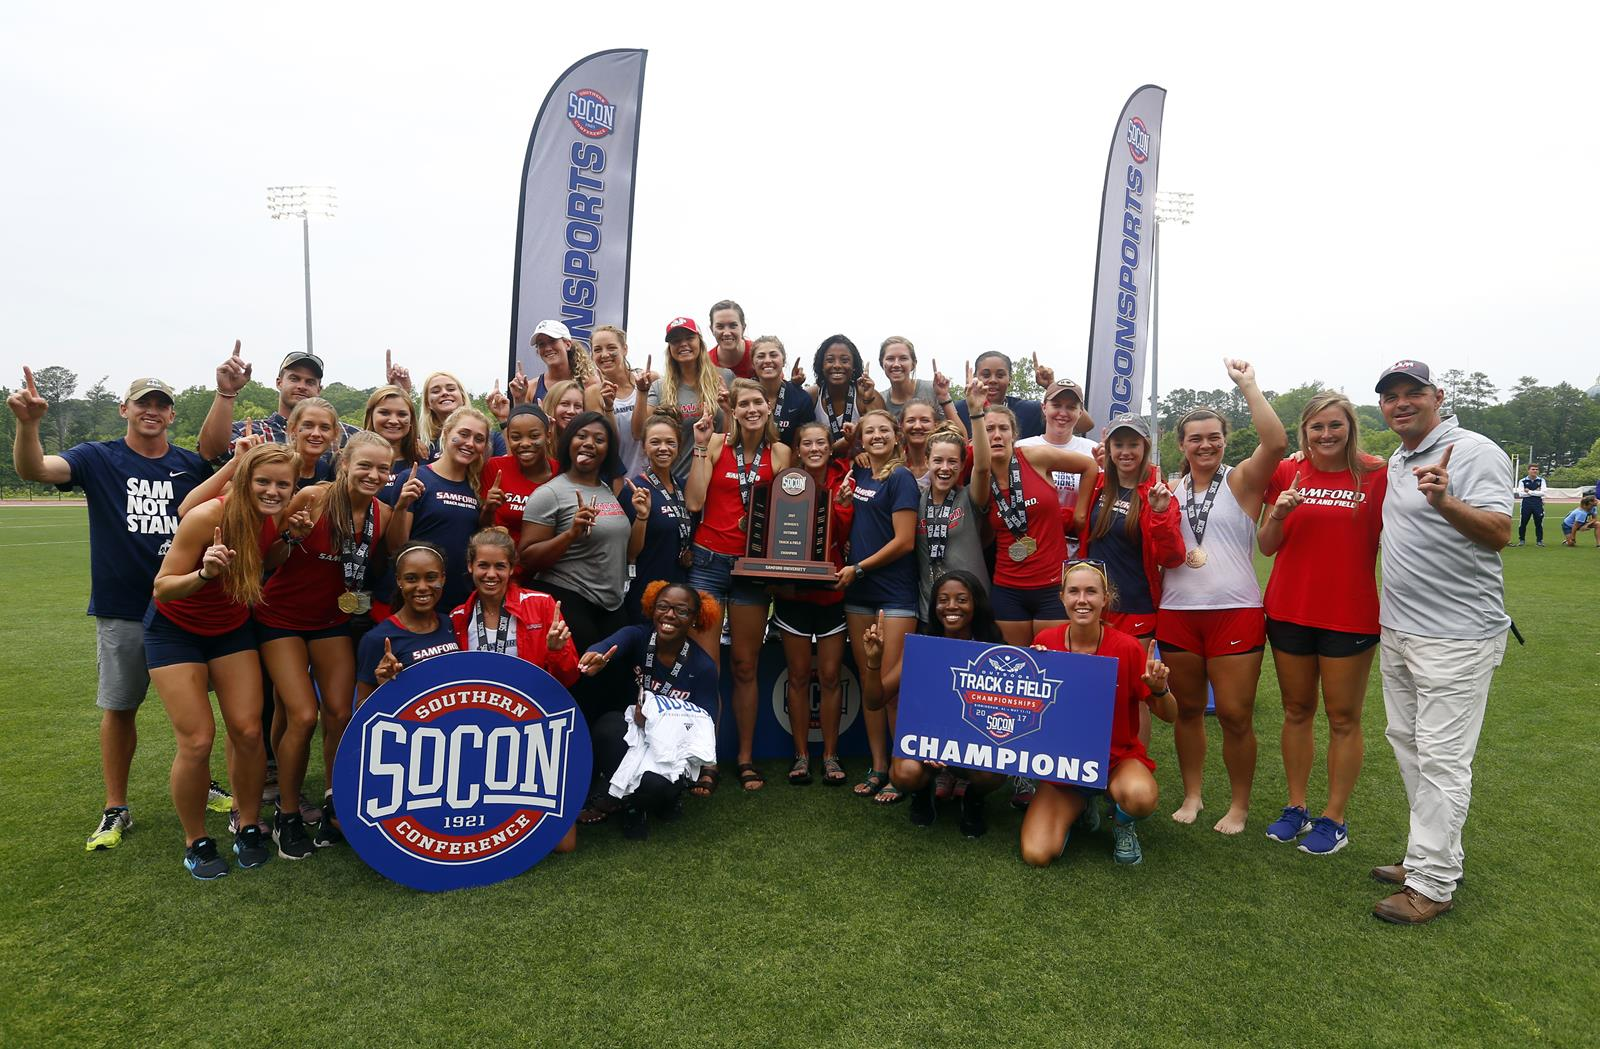 7d7307b6ecb18b SOCON CHAMPS!!!!   Dogs Cruise To Outdoor Title - Samford University ...